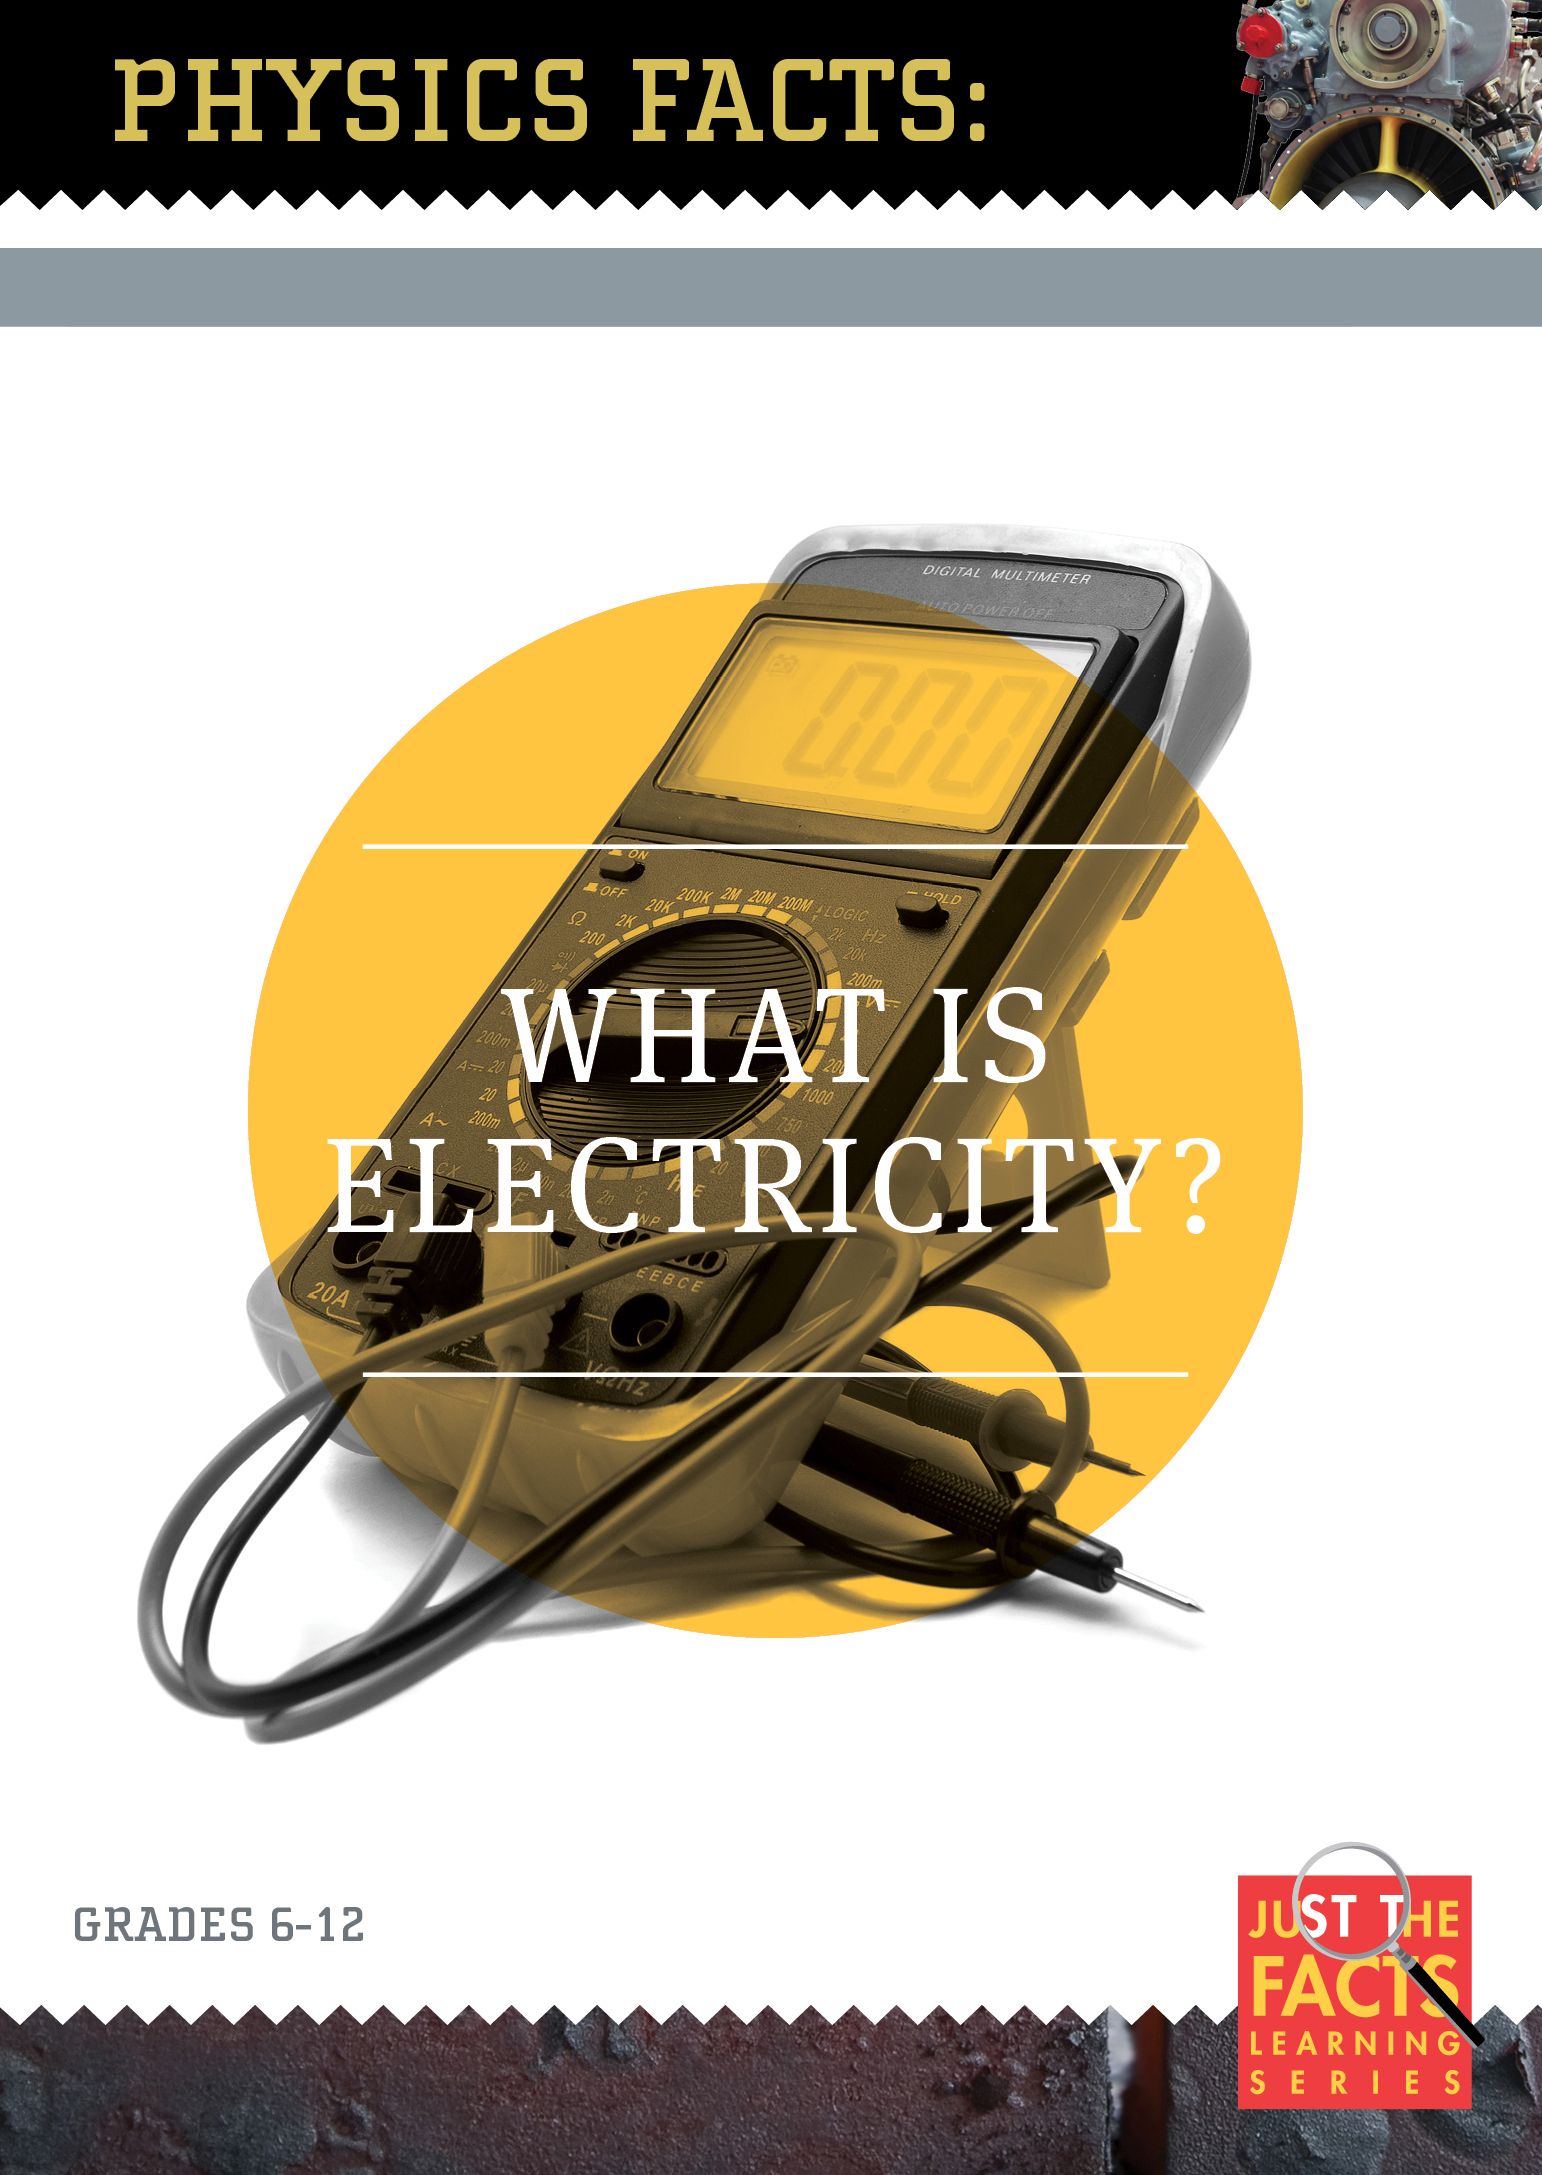 Physics Facts: What Is Electricity?